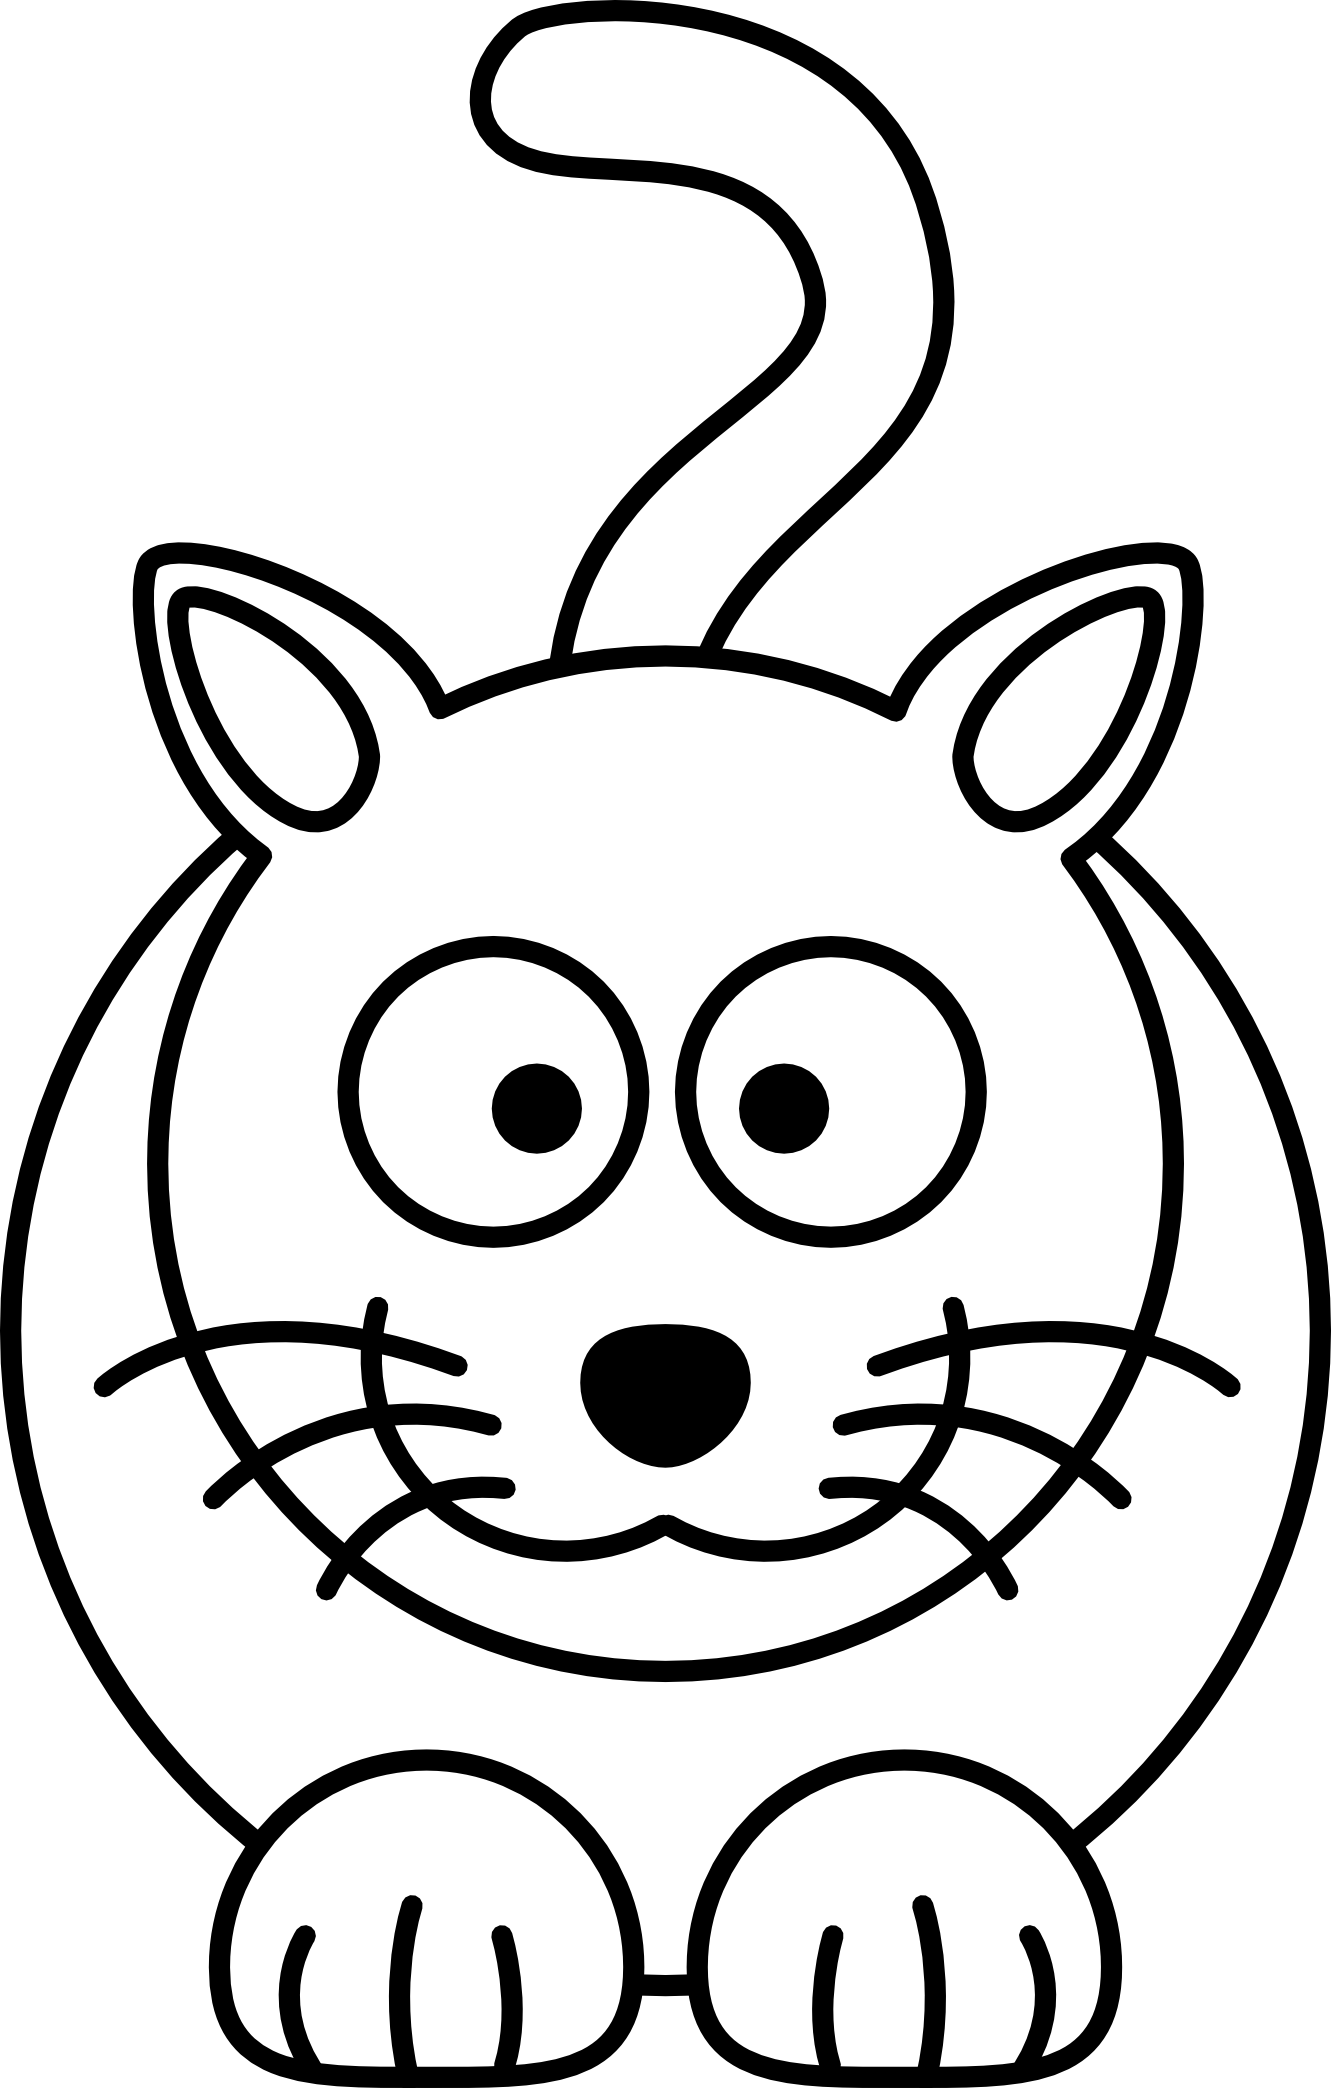 listellos line art coloring pages - photo#24